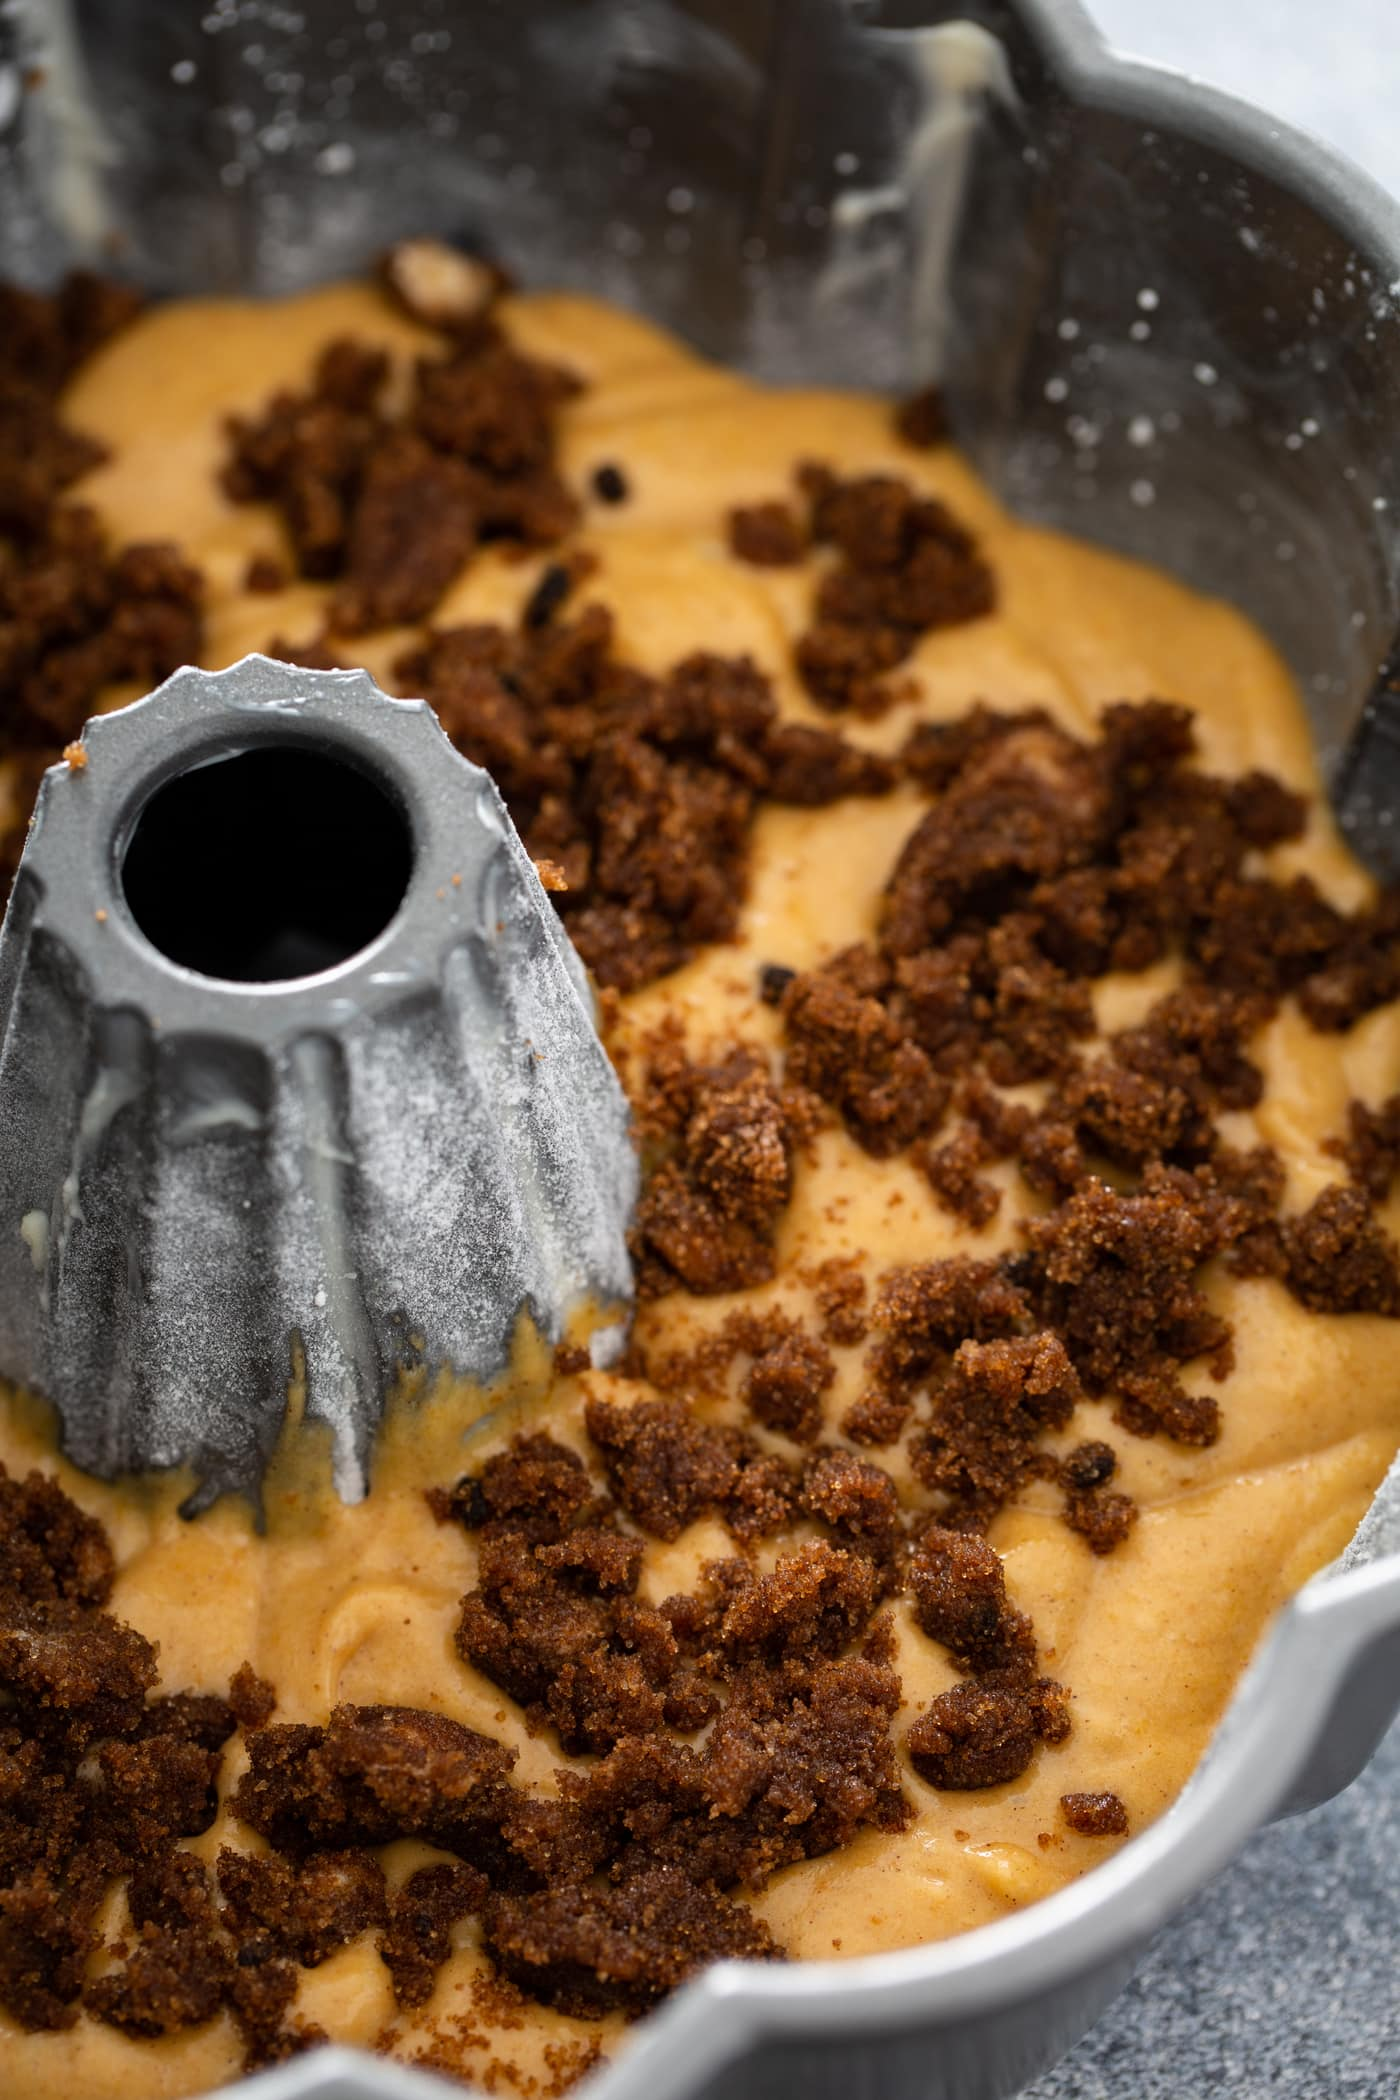 An unbaked pumpkin bundt cake in a bundt pan with cinnamon filling on top.